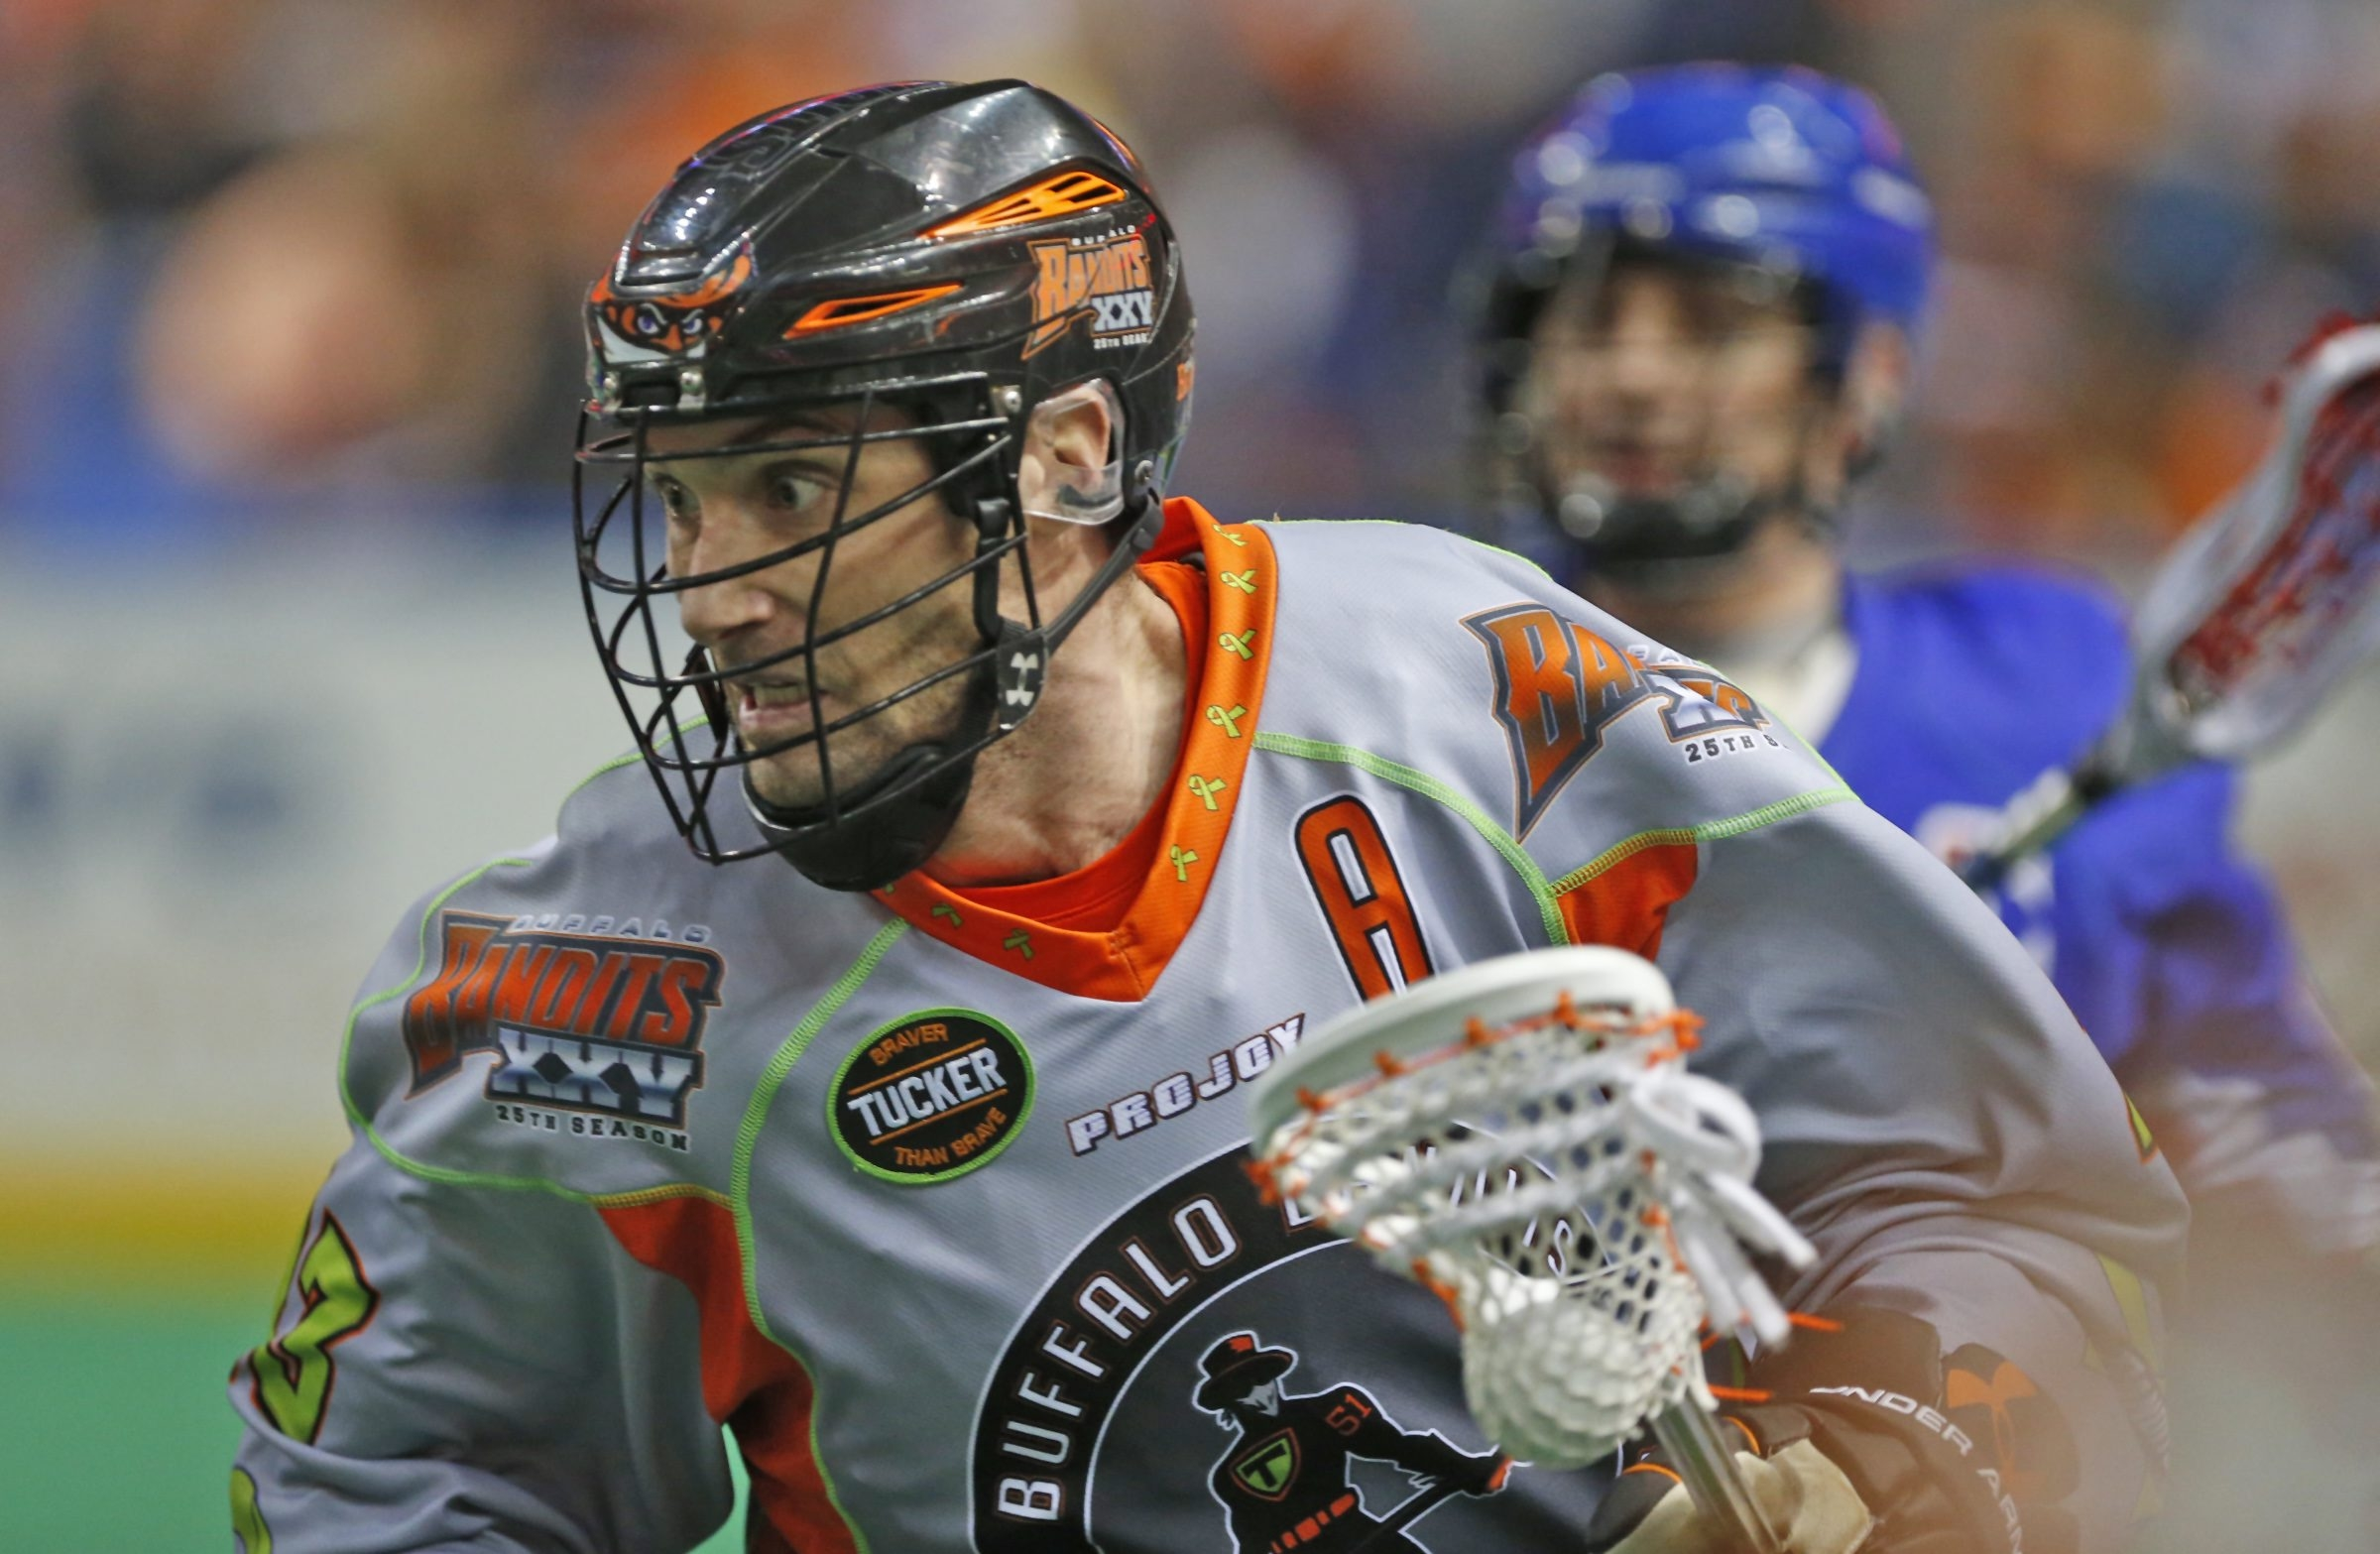 David Brock and the Bandits have a division title in their sights. (Harry Scull Jr./Buffalo News)